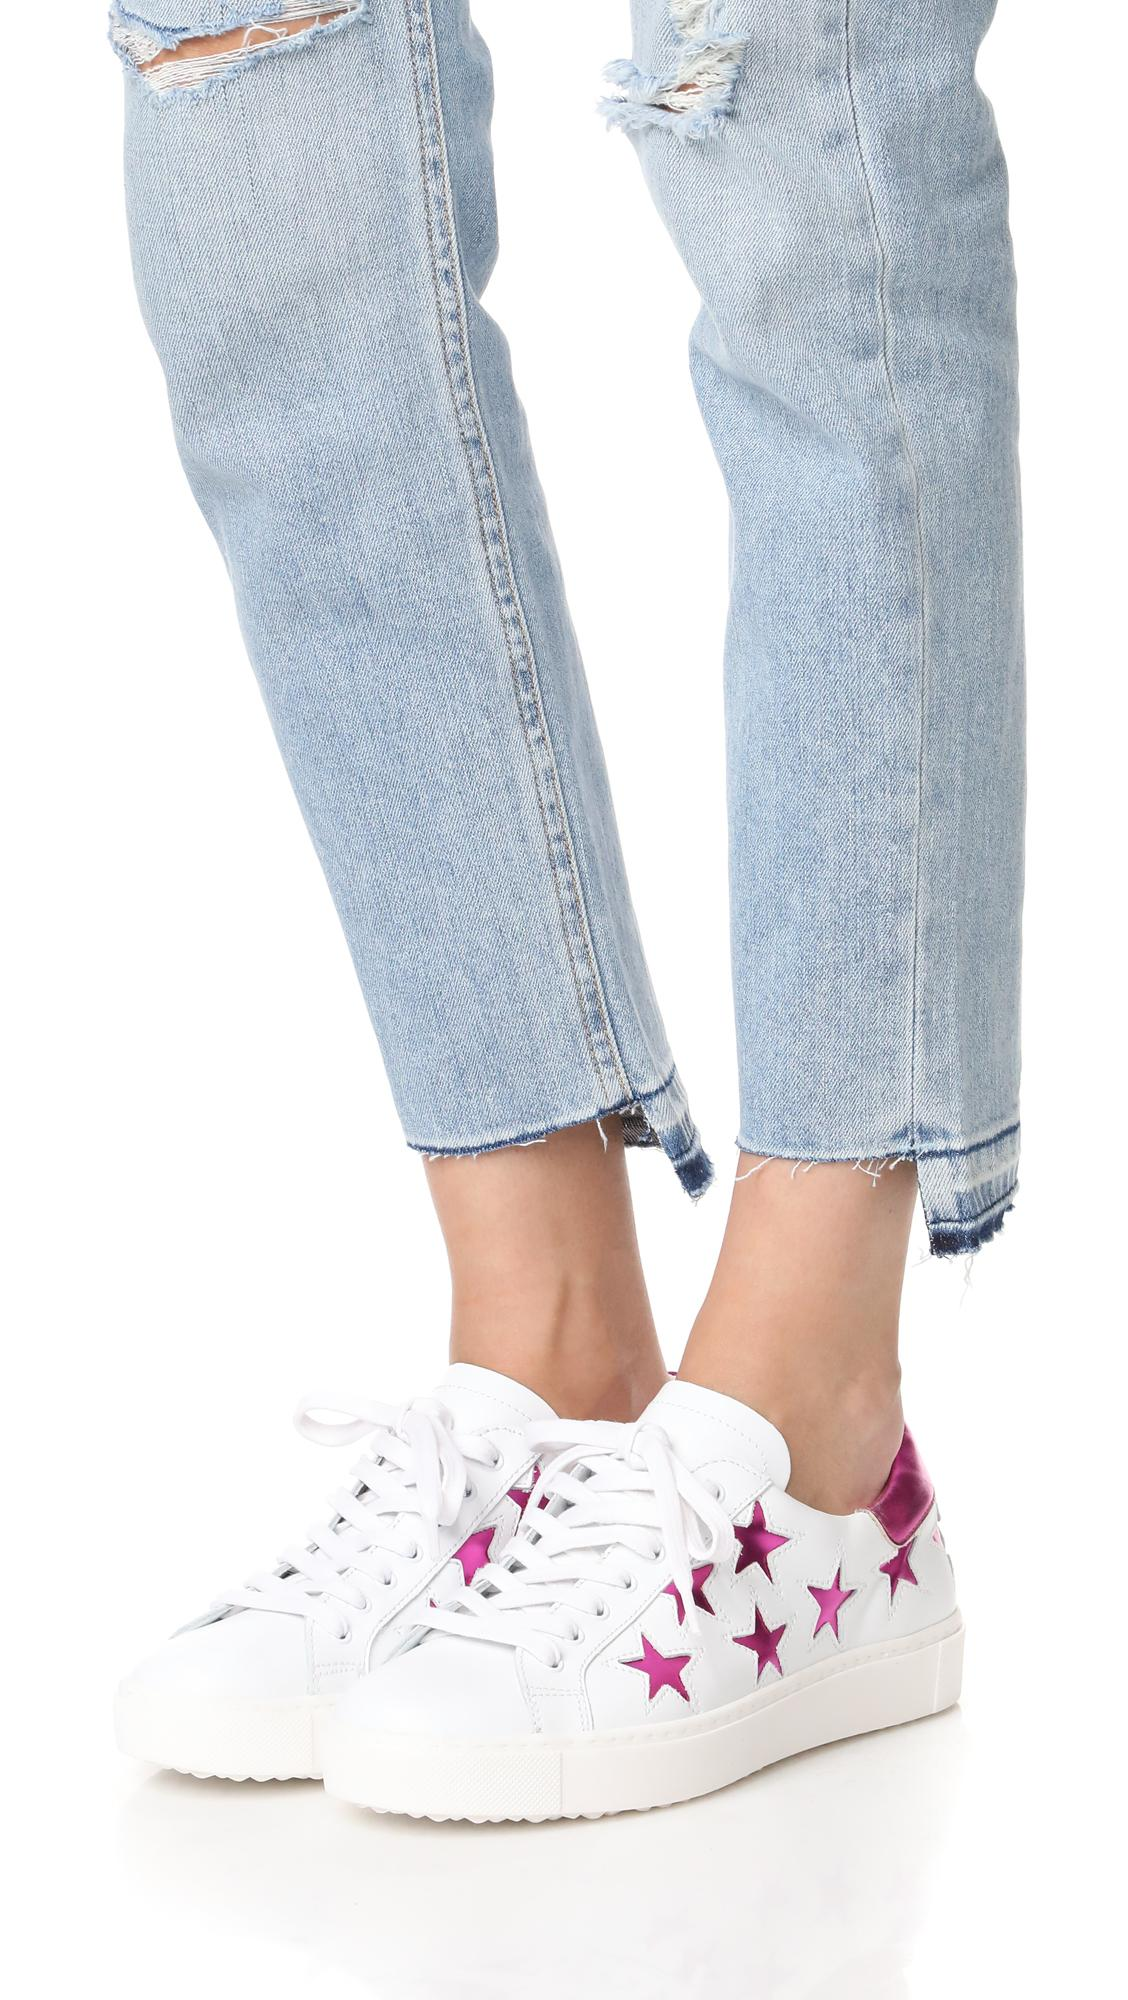 One By Leather Stella Star Sneakers